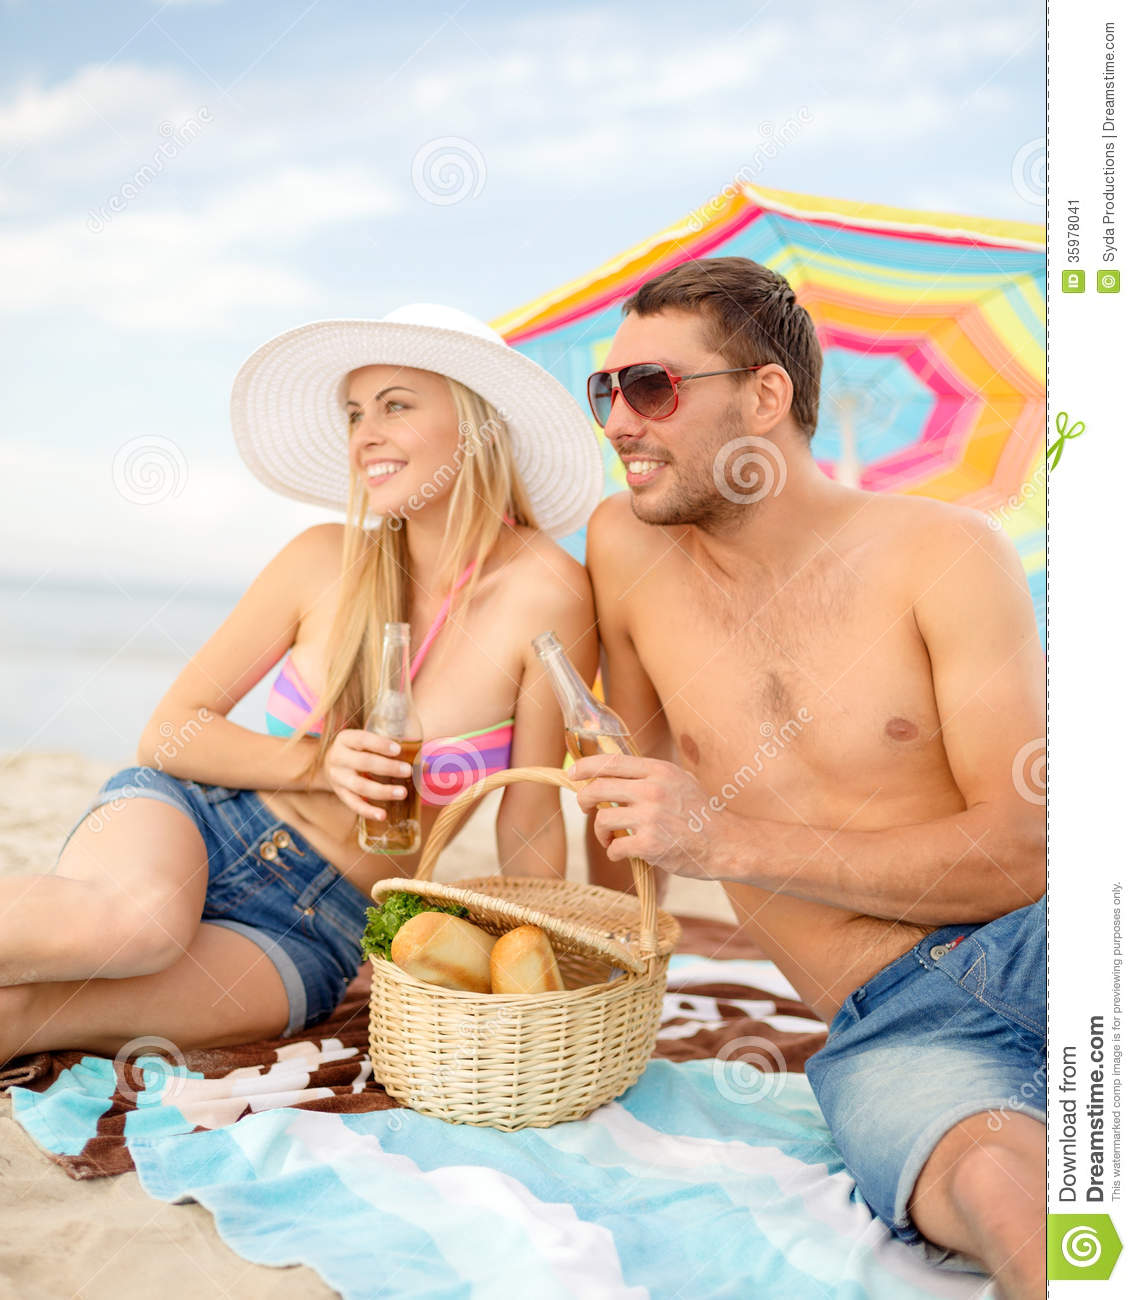 Colorful Beach Condo Makeover: Smiling Couple Having Picnic On The Beach Stock Image